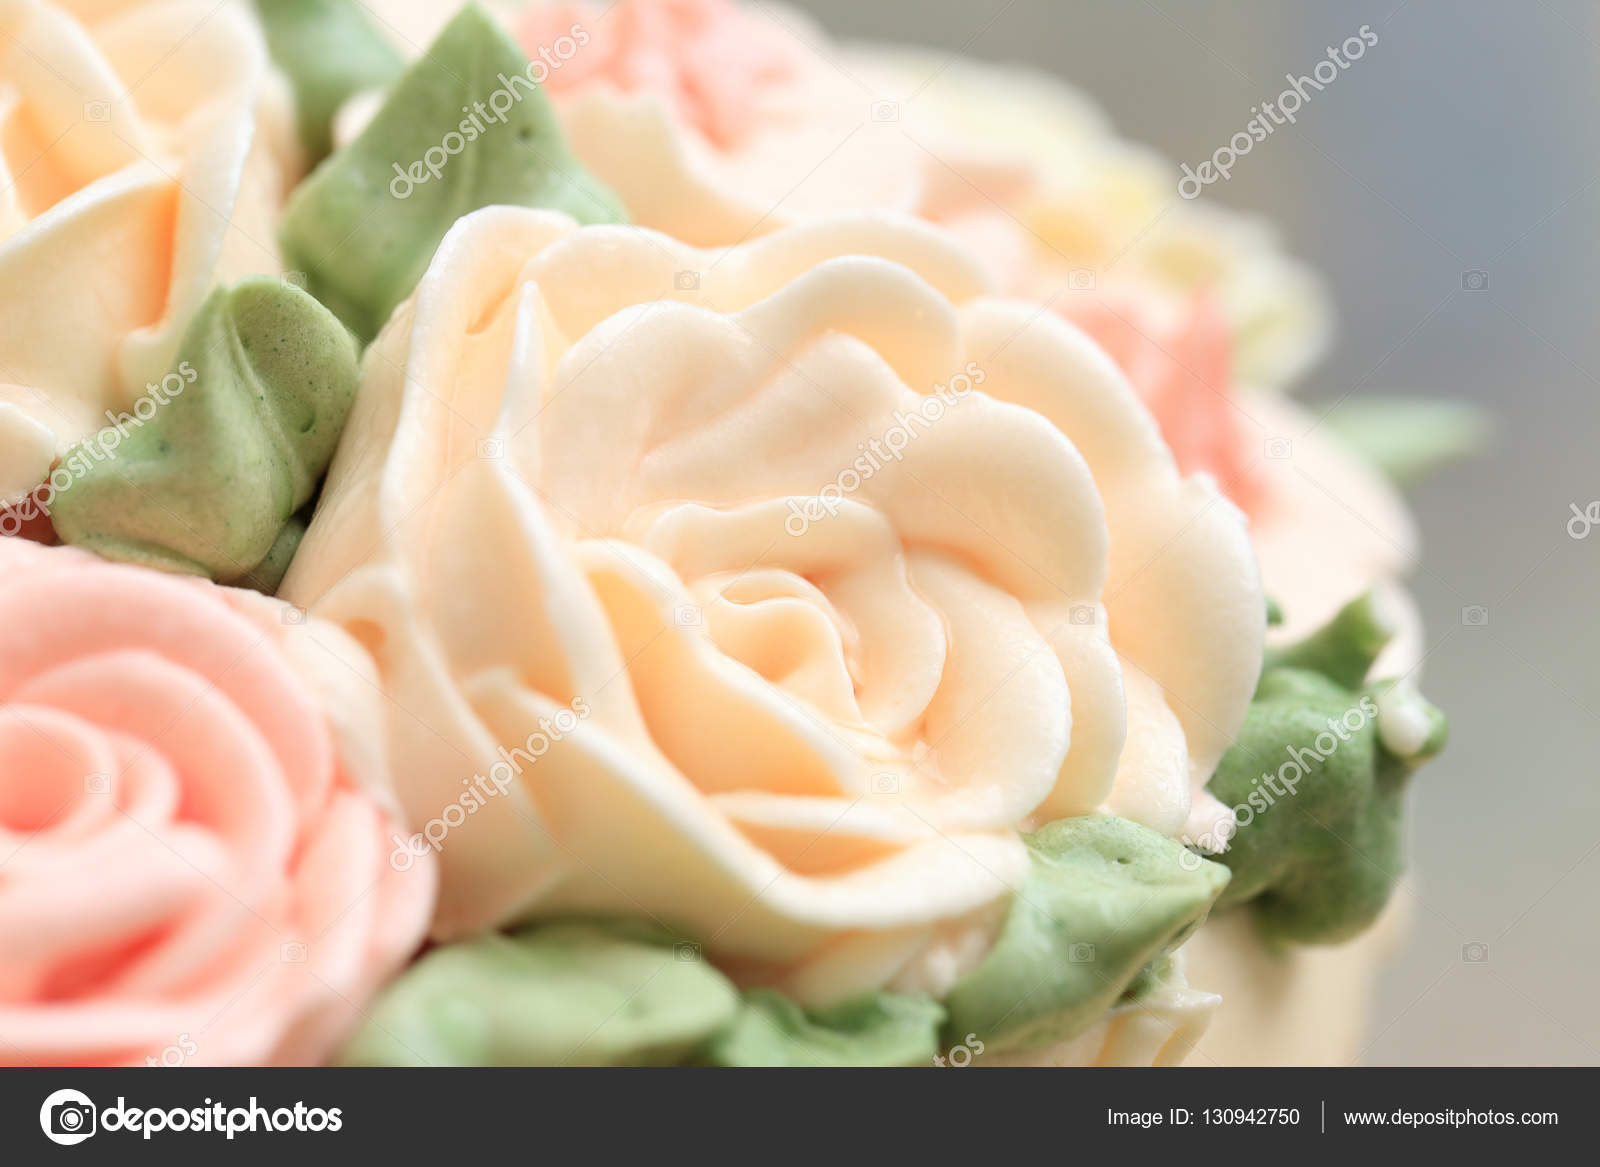 Close Up Of Flowers Made From Cream On Wedding Or Birthday Cake